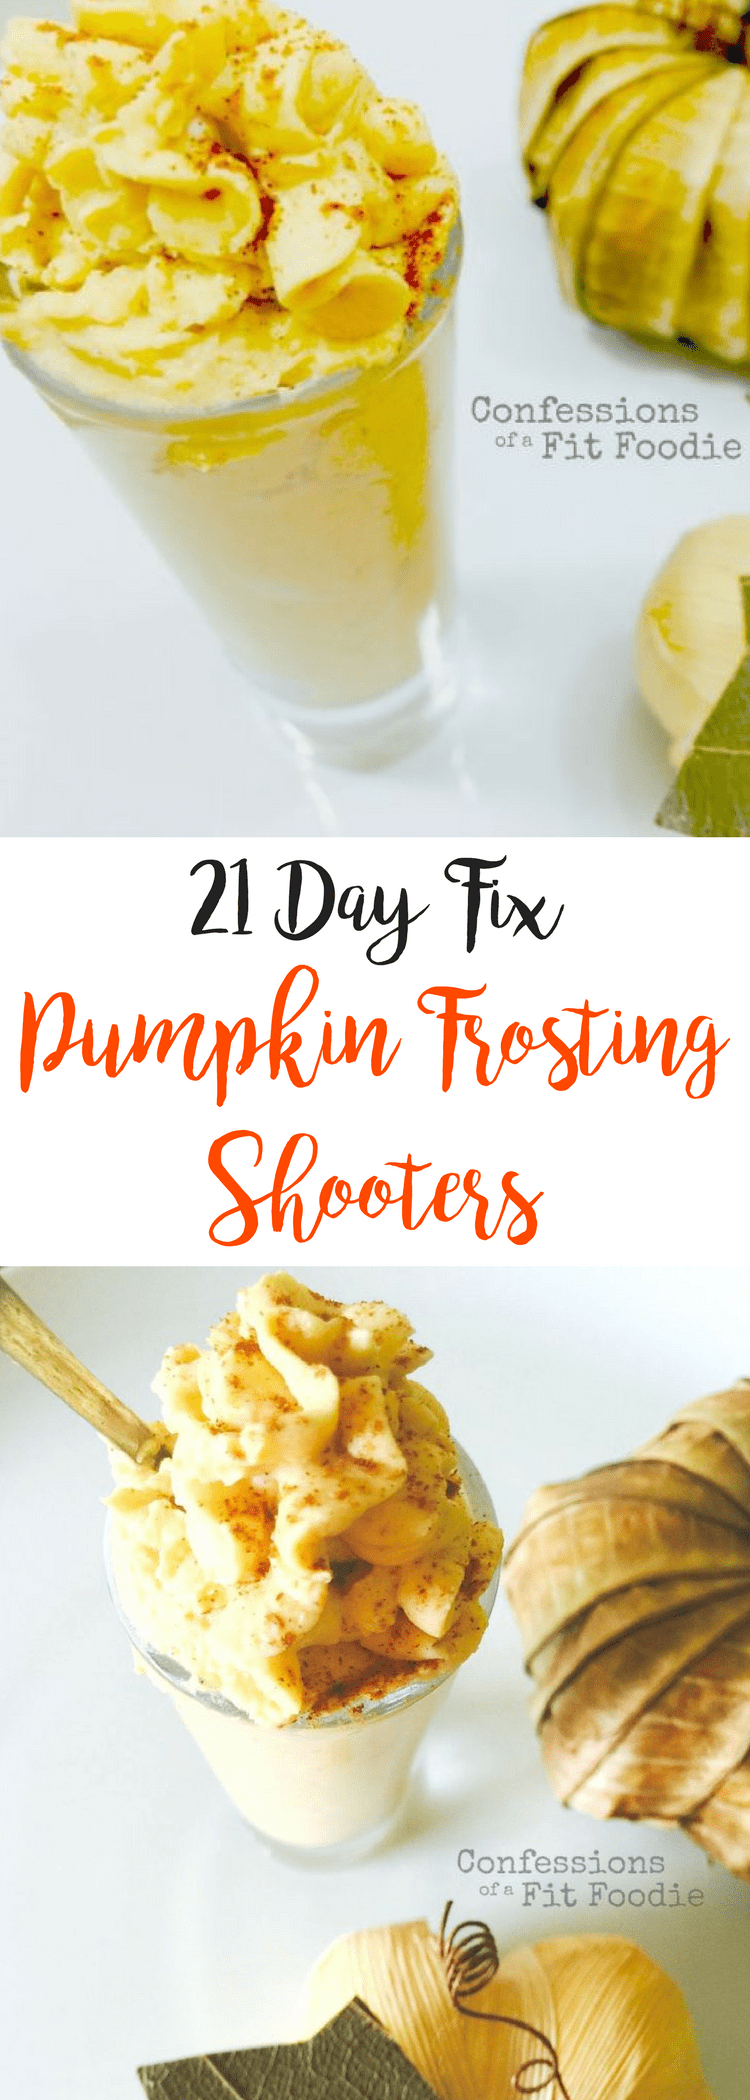 Pumpkin Frosting Shooters {21 Day Fix} | Confessions of a Fit Foodie